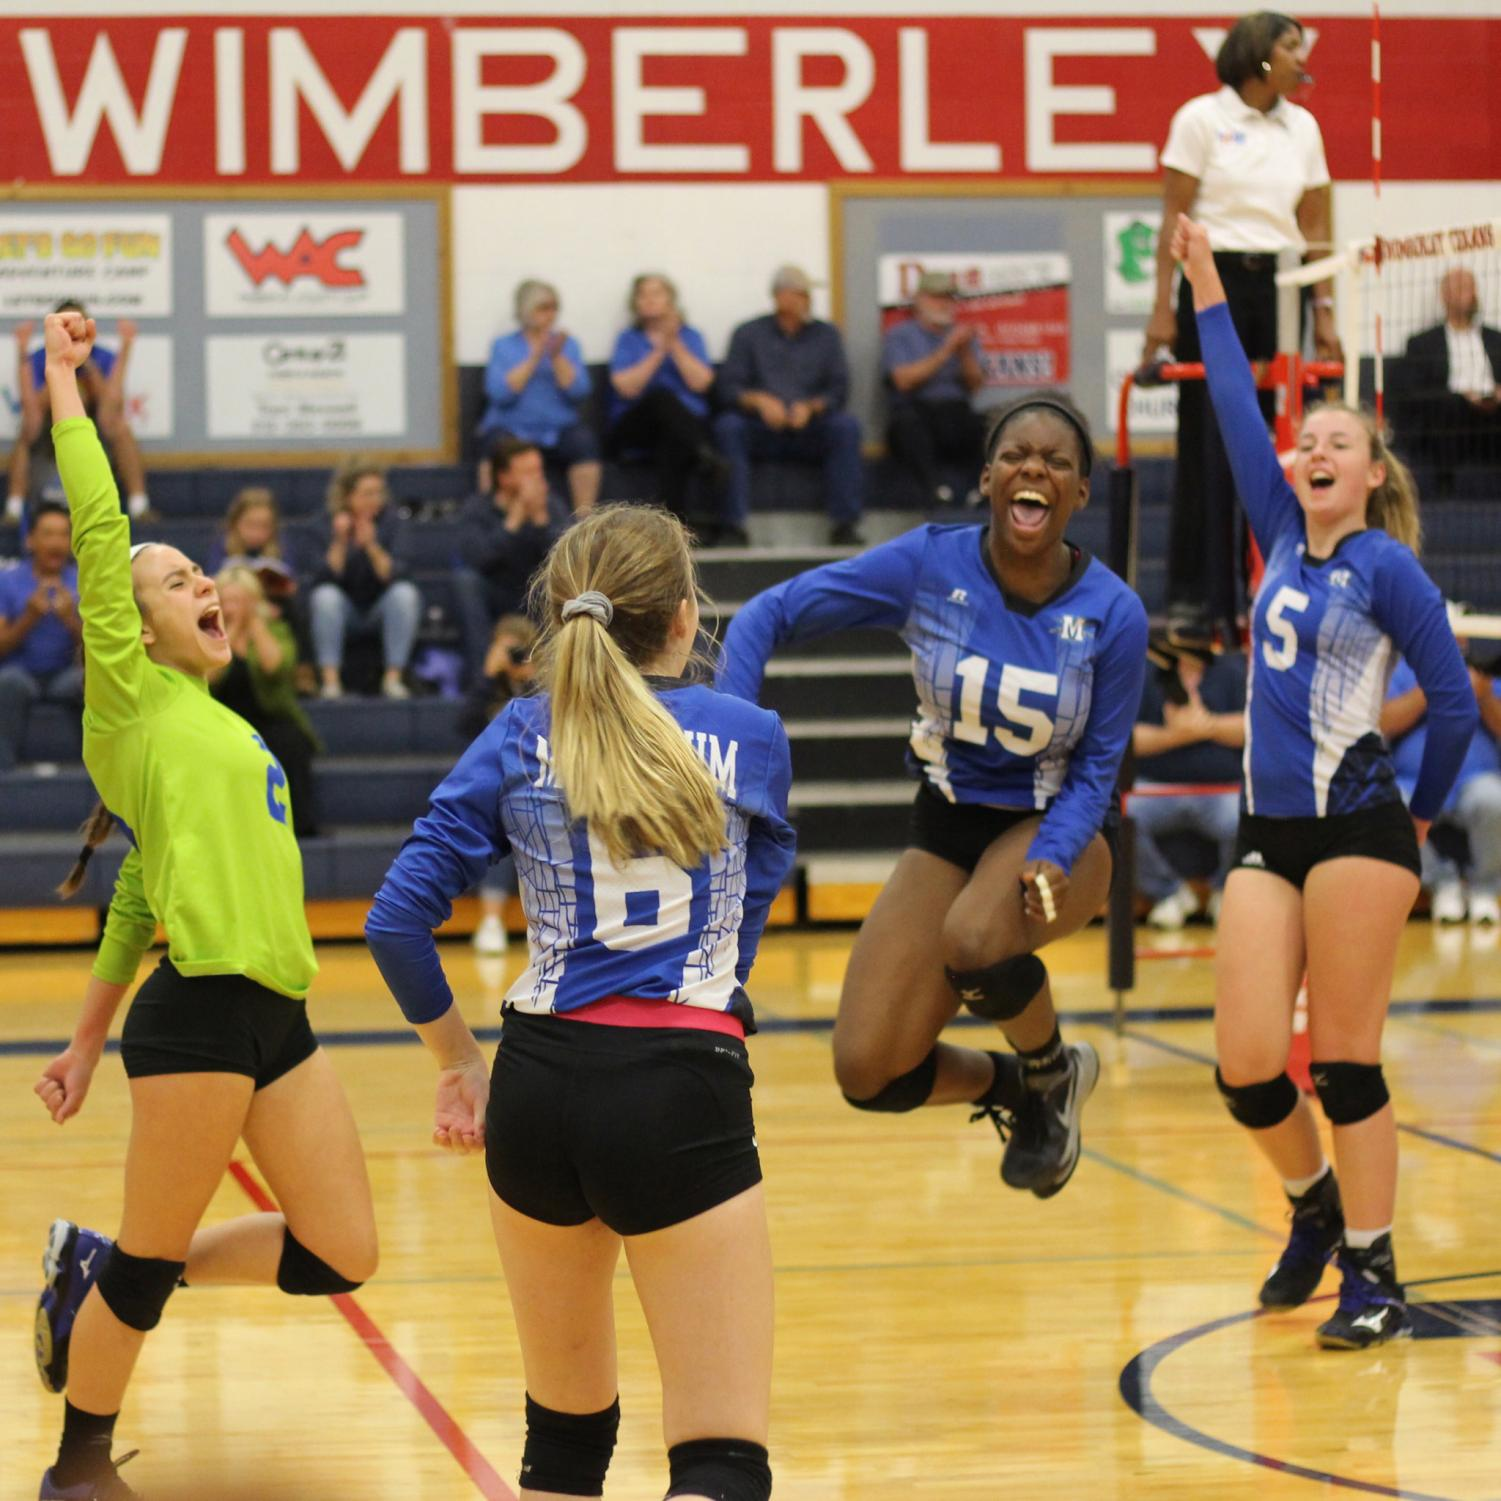 """Senior Madison Olsen won a Sweepstakes Award in sports photography for her Oct. 30 photo """"Point Taken,"""" which depicted 2017 volleyball players celebrating after scoring a point in their bi-district playoff match against Kerrville Tivy in Wimberley. """"This photo captures the moment perfectly,"""" the judges said. """"Volleyball players are so expressive after every point. That makes the sport so fun to photograph. This point seems even more consequential than normal ones because of the emotions on the players' faces. Congratulations to the photographer for not just sticking with the action of the individual plays, but watching what happens afterward."""""""